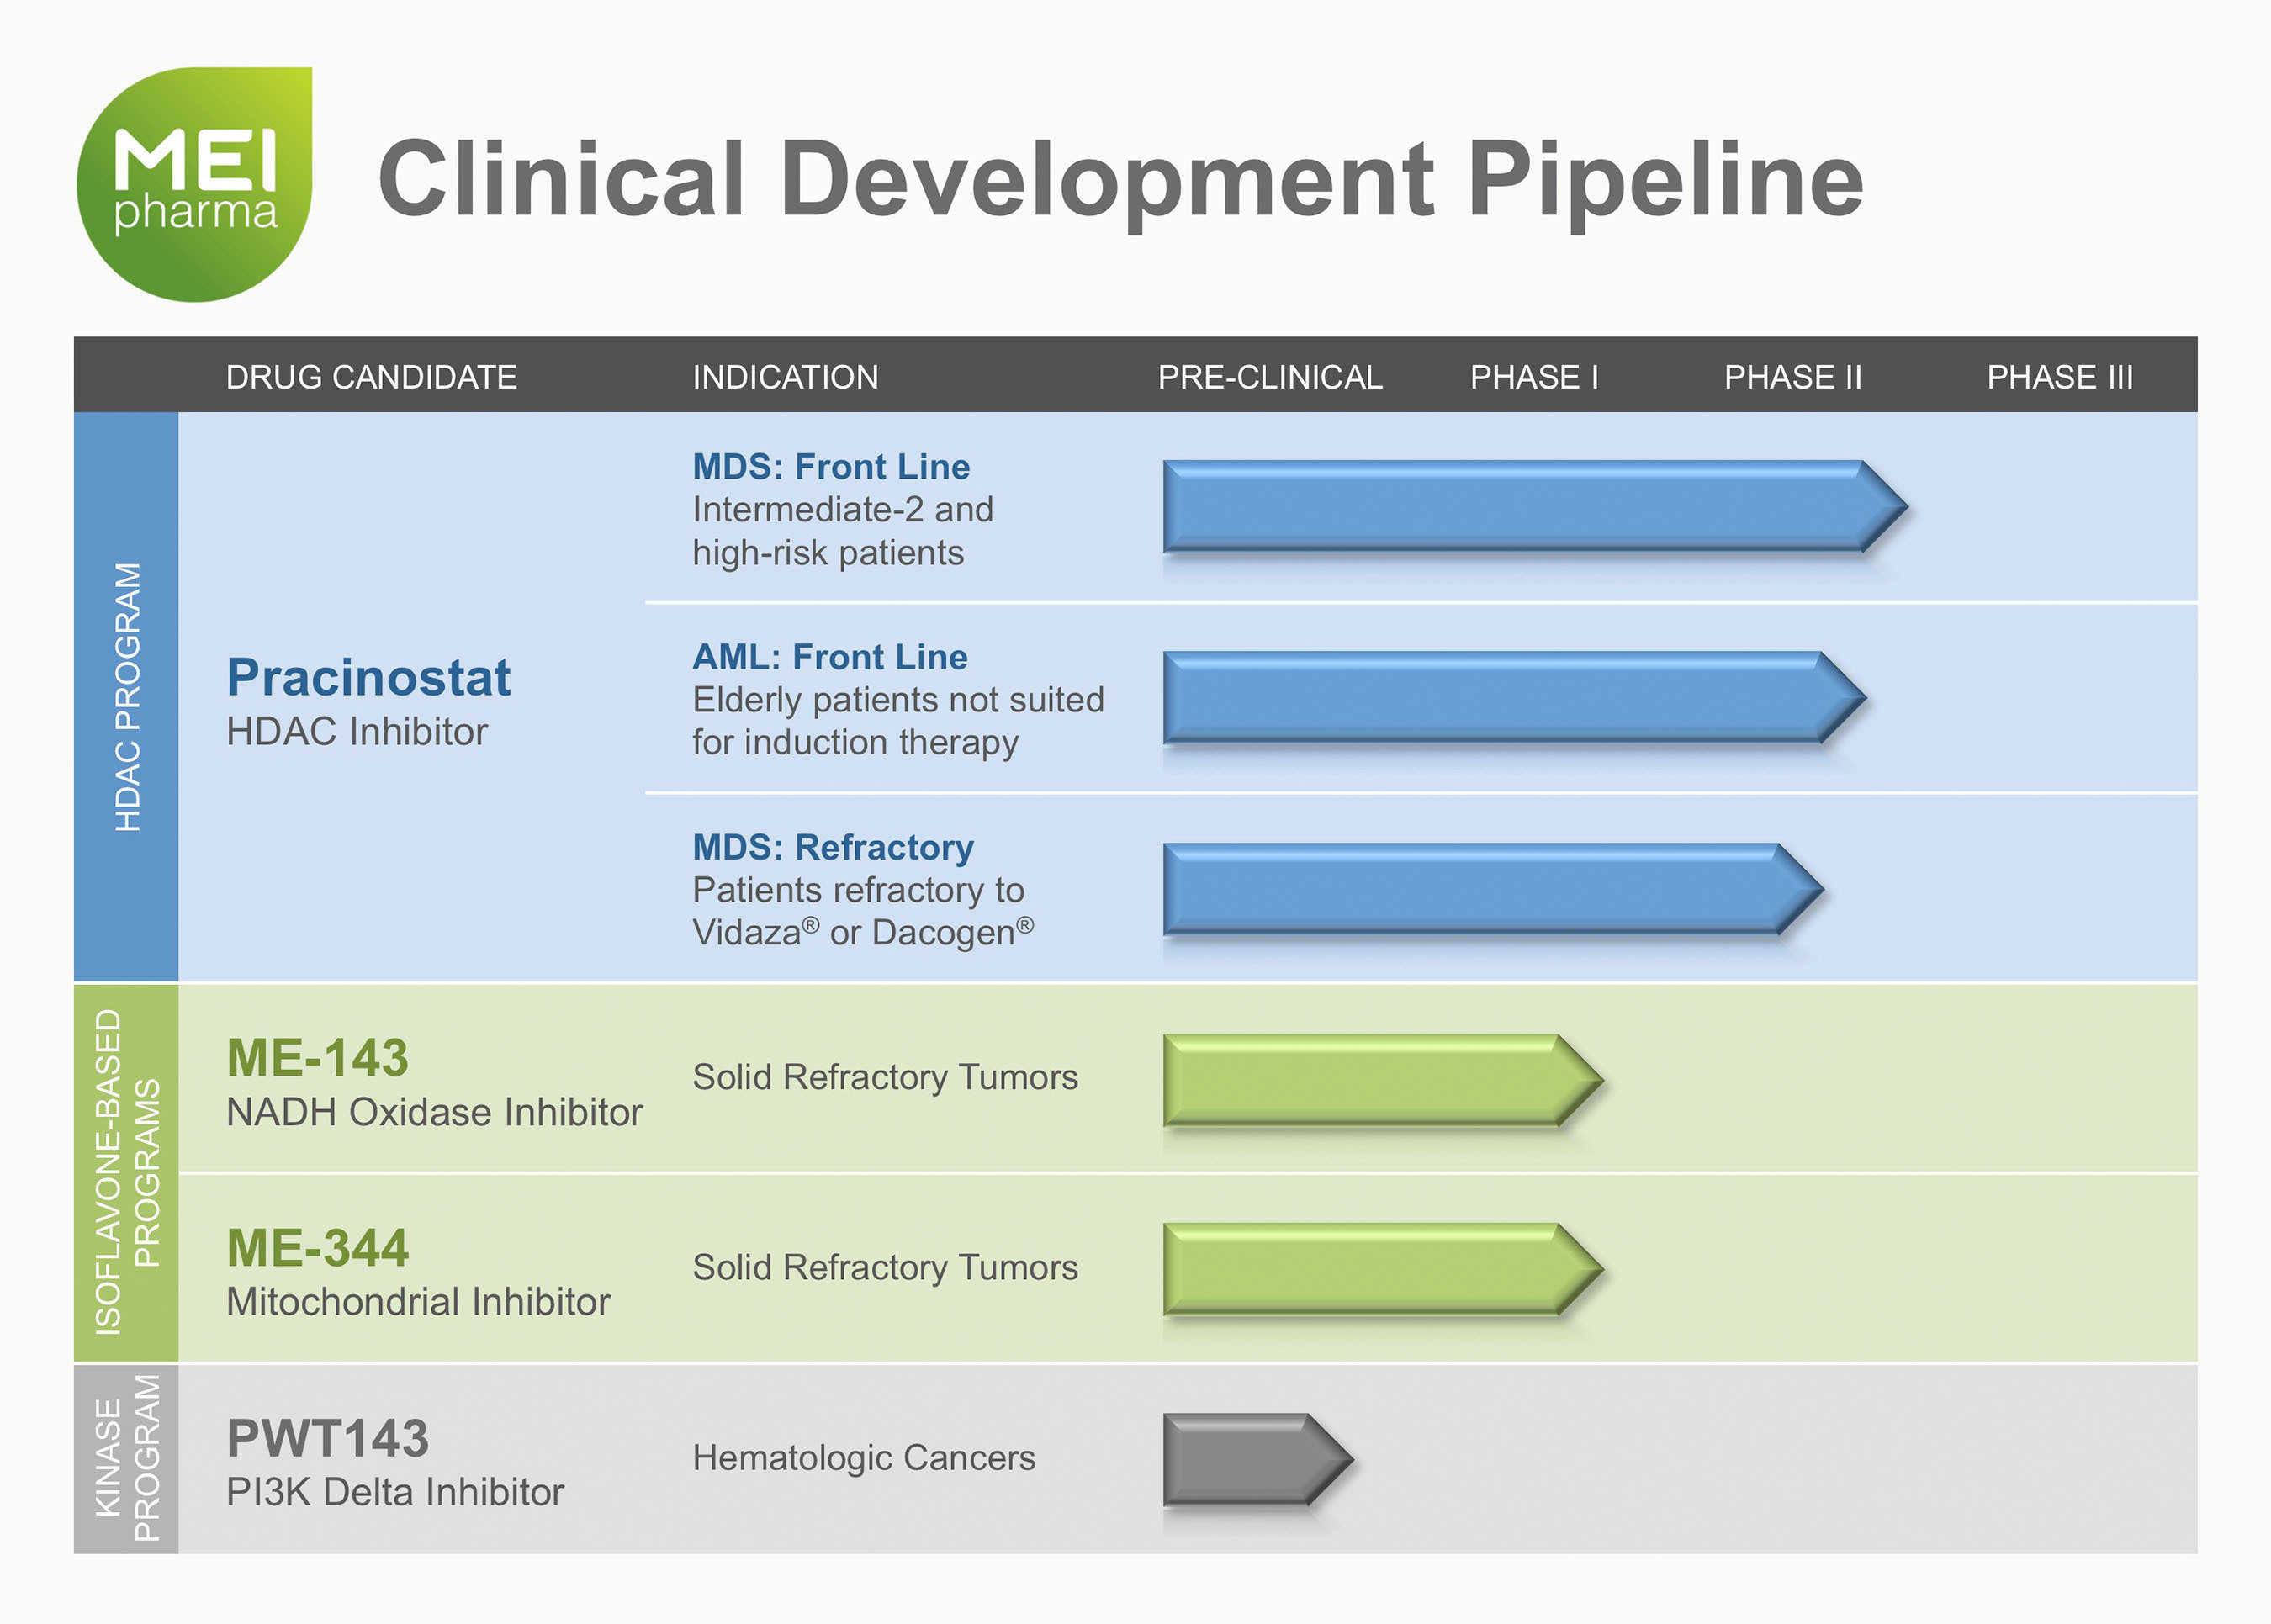 The acquisition of PWT143 expands MEI Pharma's pipeline of drug candidates while growing the Company's ...